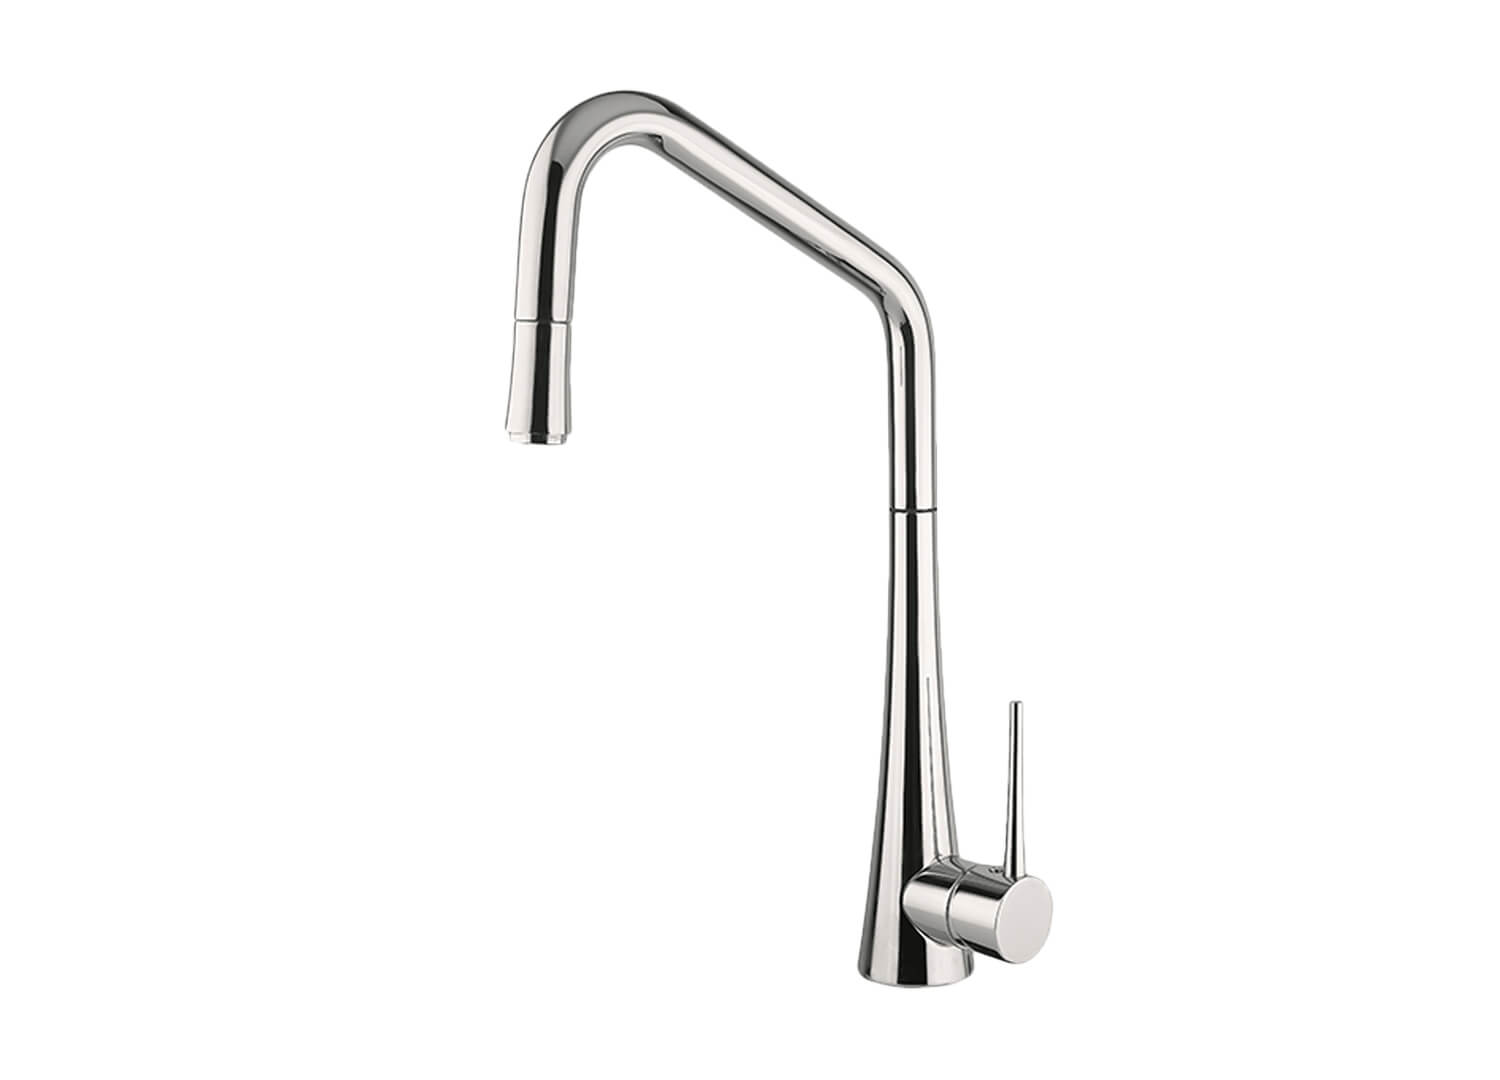 Tink-D Pull Out Kitchen Mixer Abey